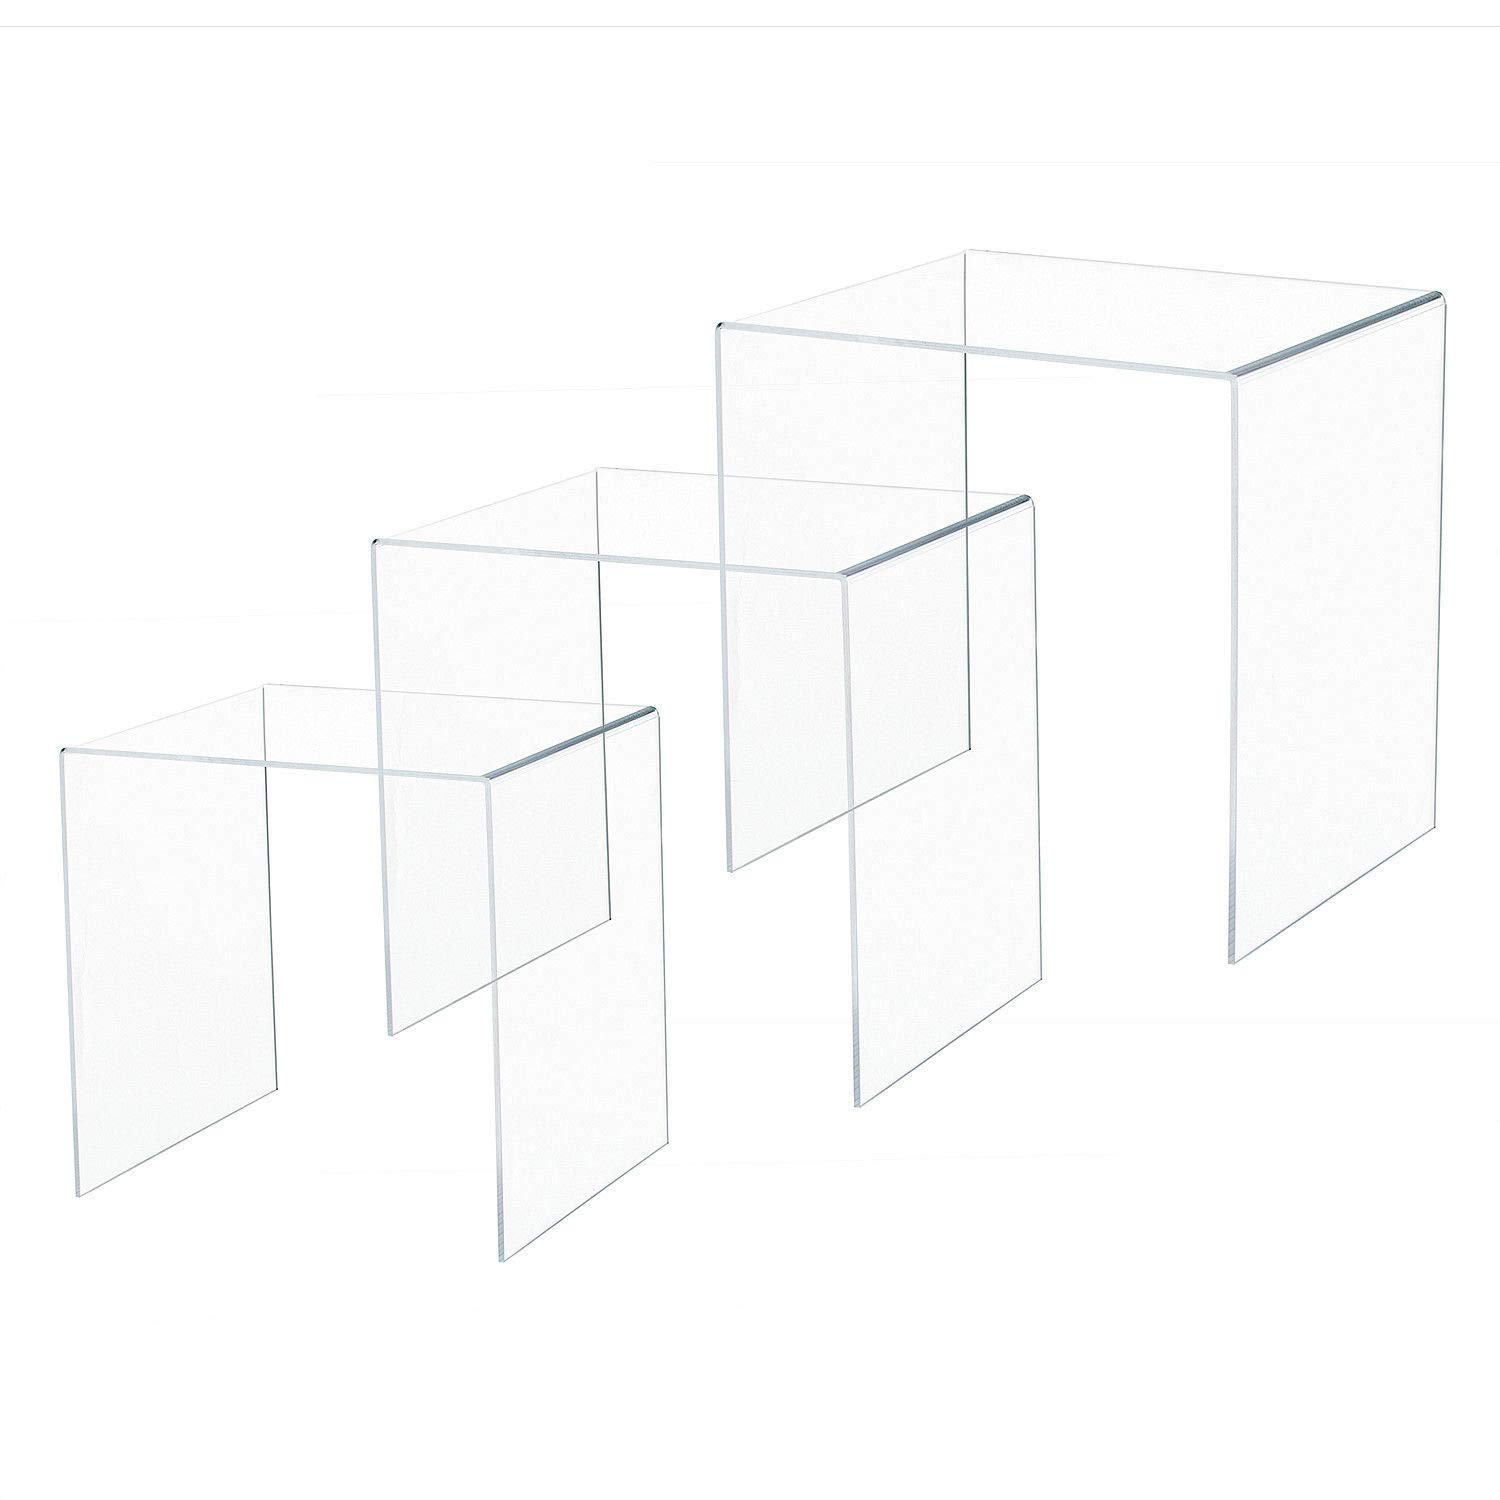 GJH One Acrylic Nesting End Table Modern Coffee Table Lucite Side Bedside Furniture 3pcs